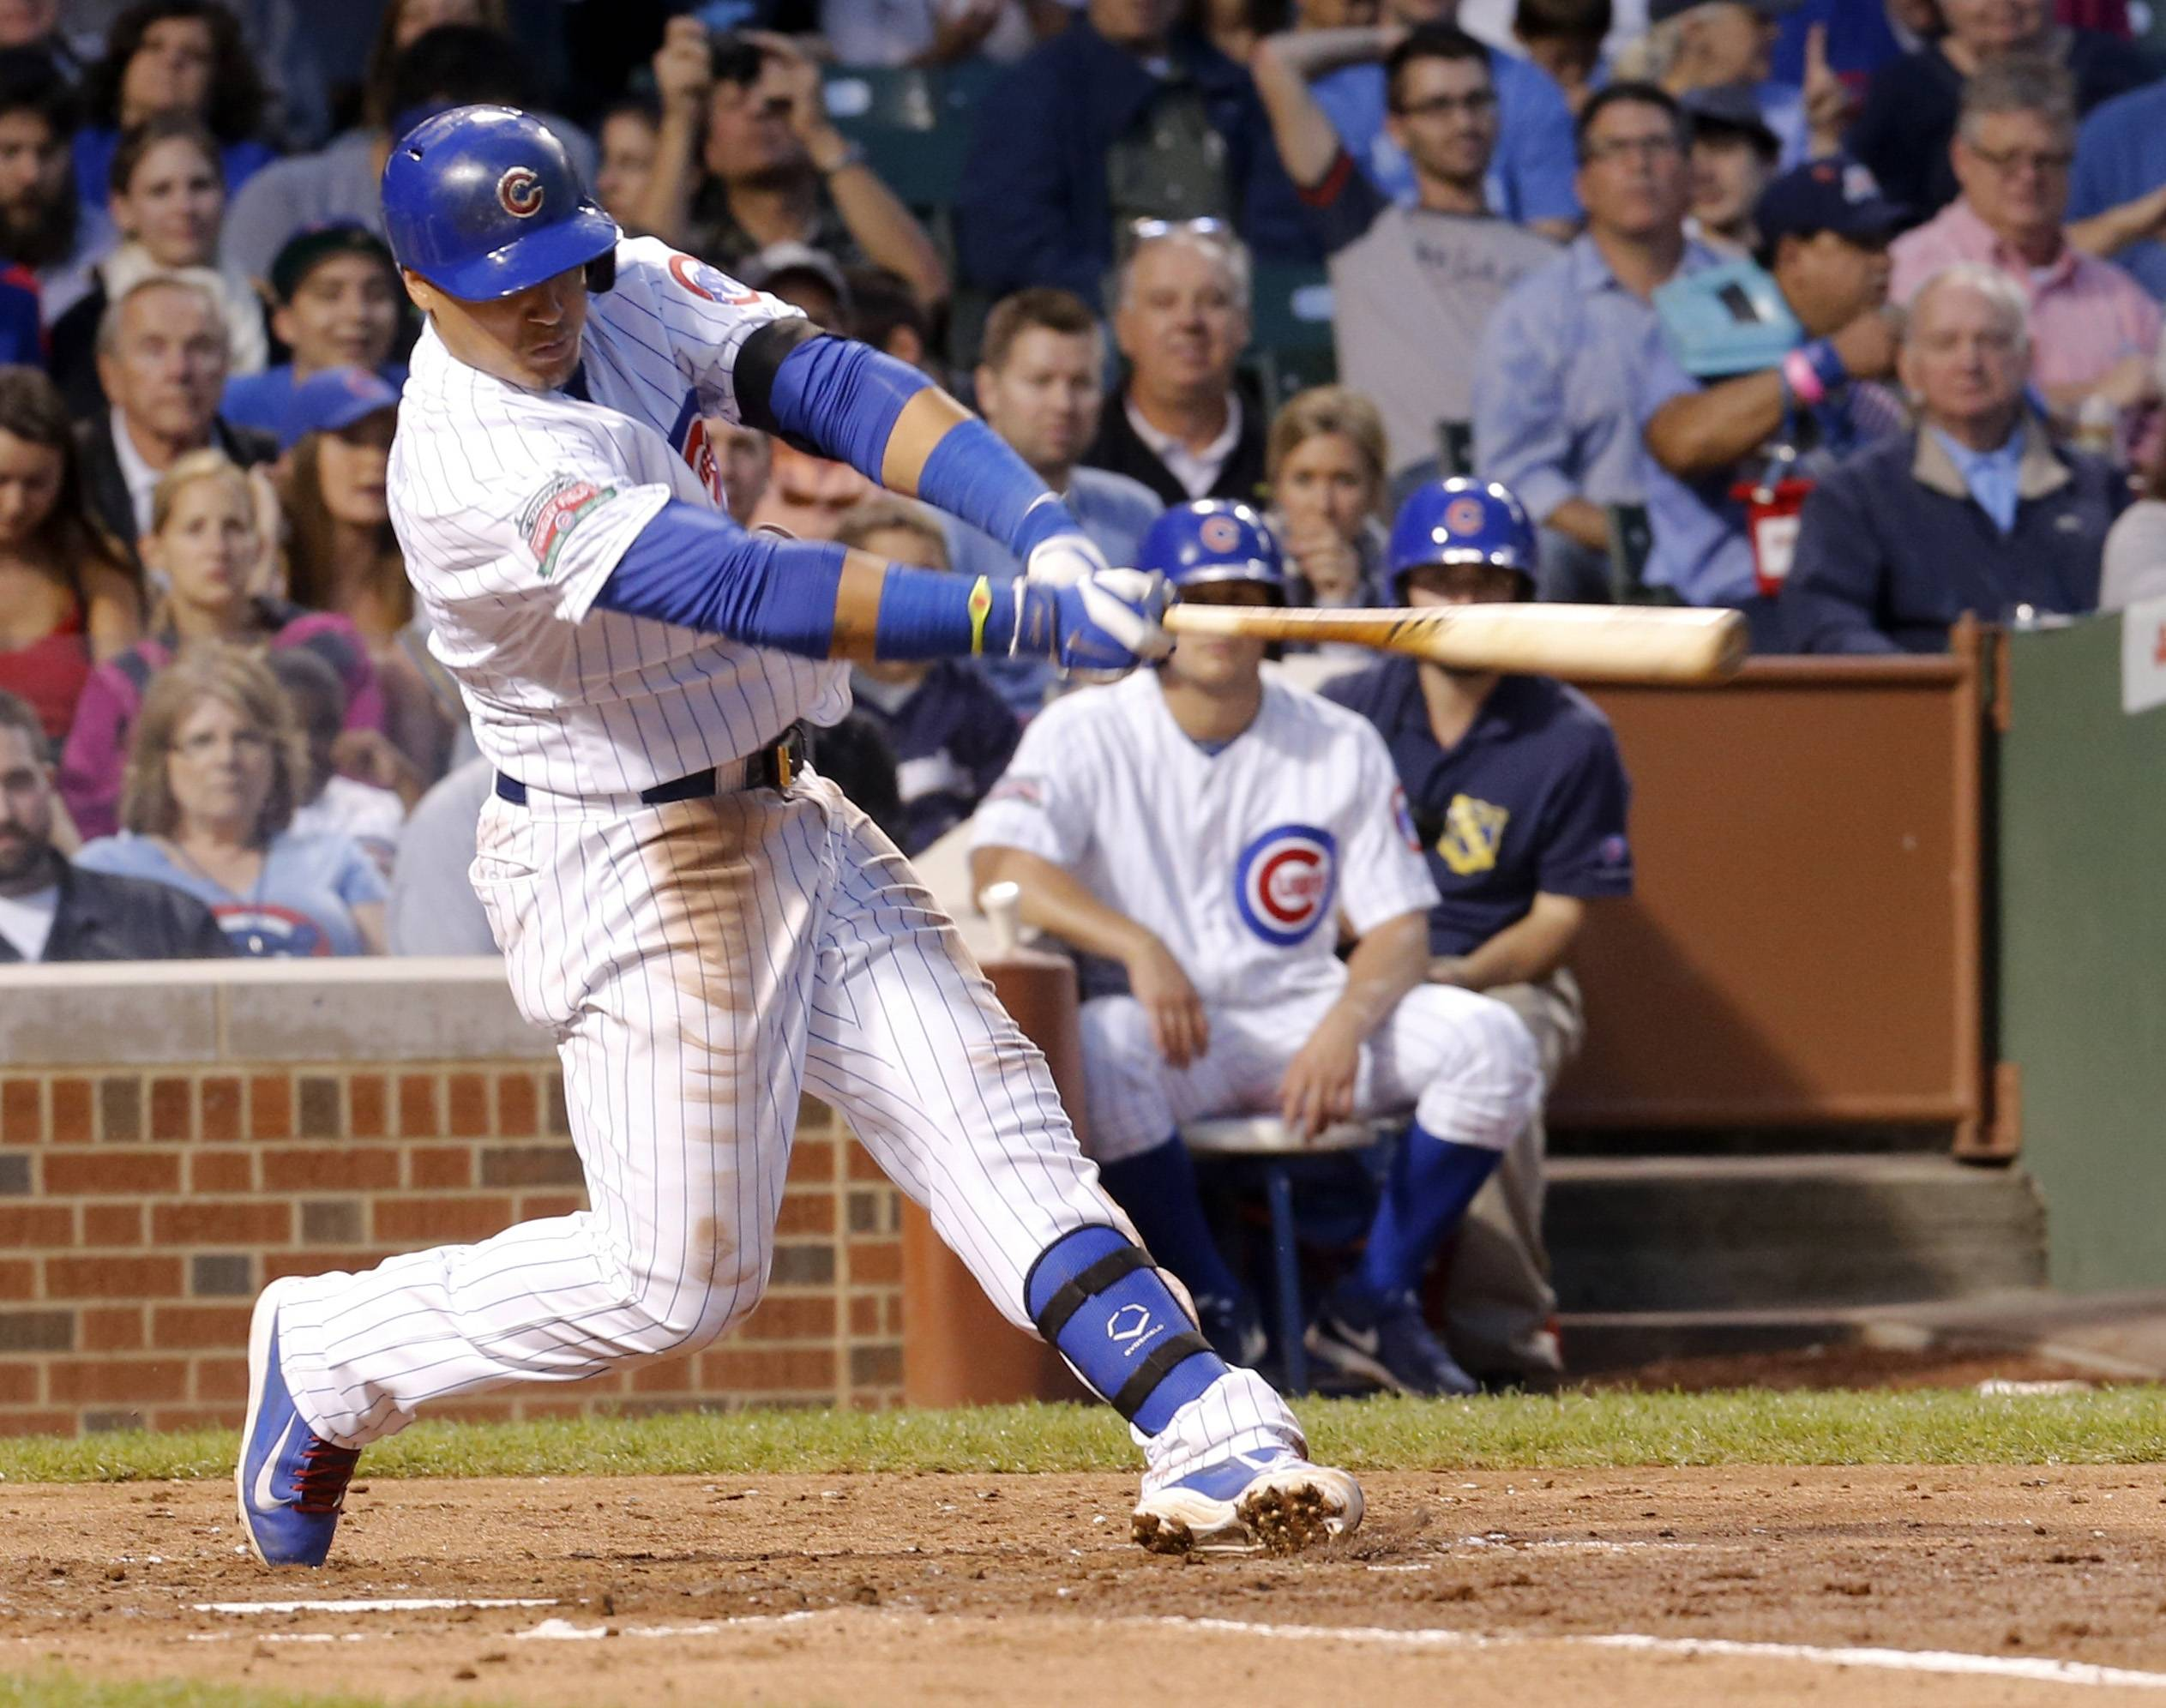 Chicago Cubs' Javier Baez follows through on a home run off Milwaukee Brewers starting pitcher Kyle Lohse during the third inning Wednesday at Wrigley Field. The Cubs won 4-2.